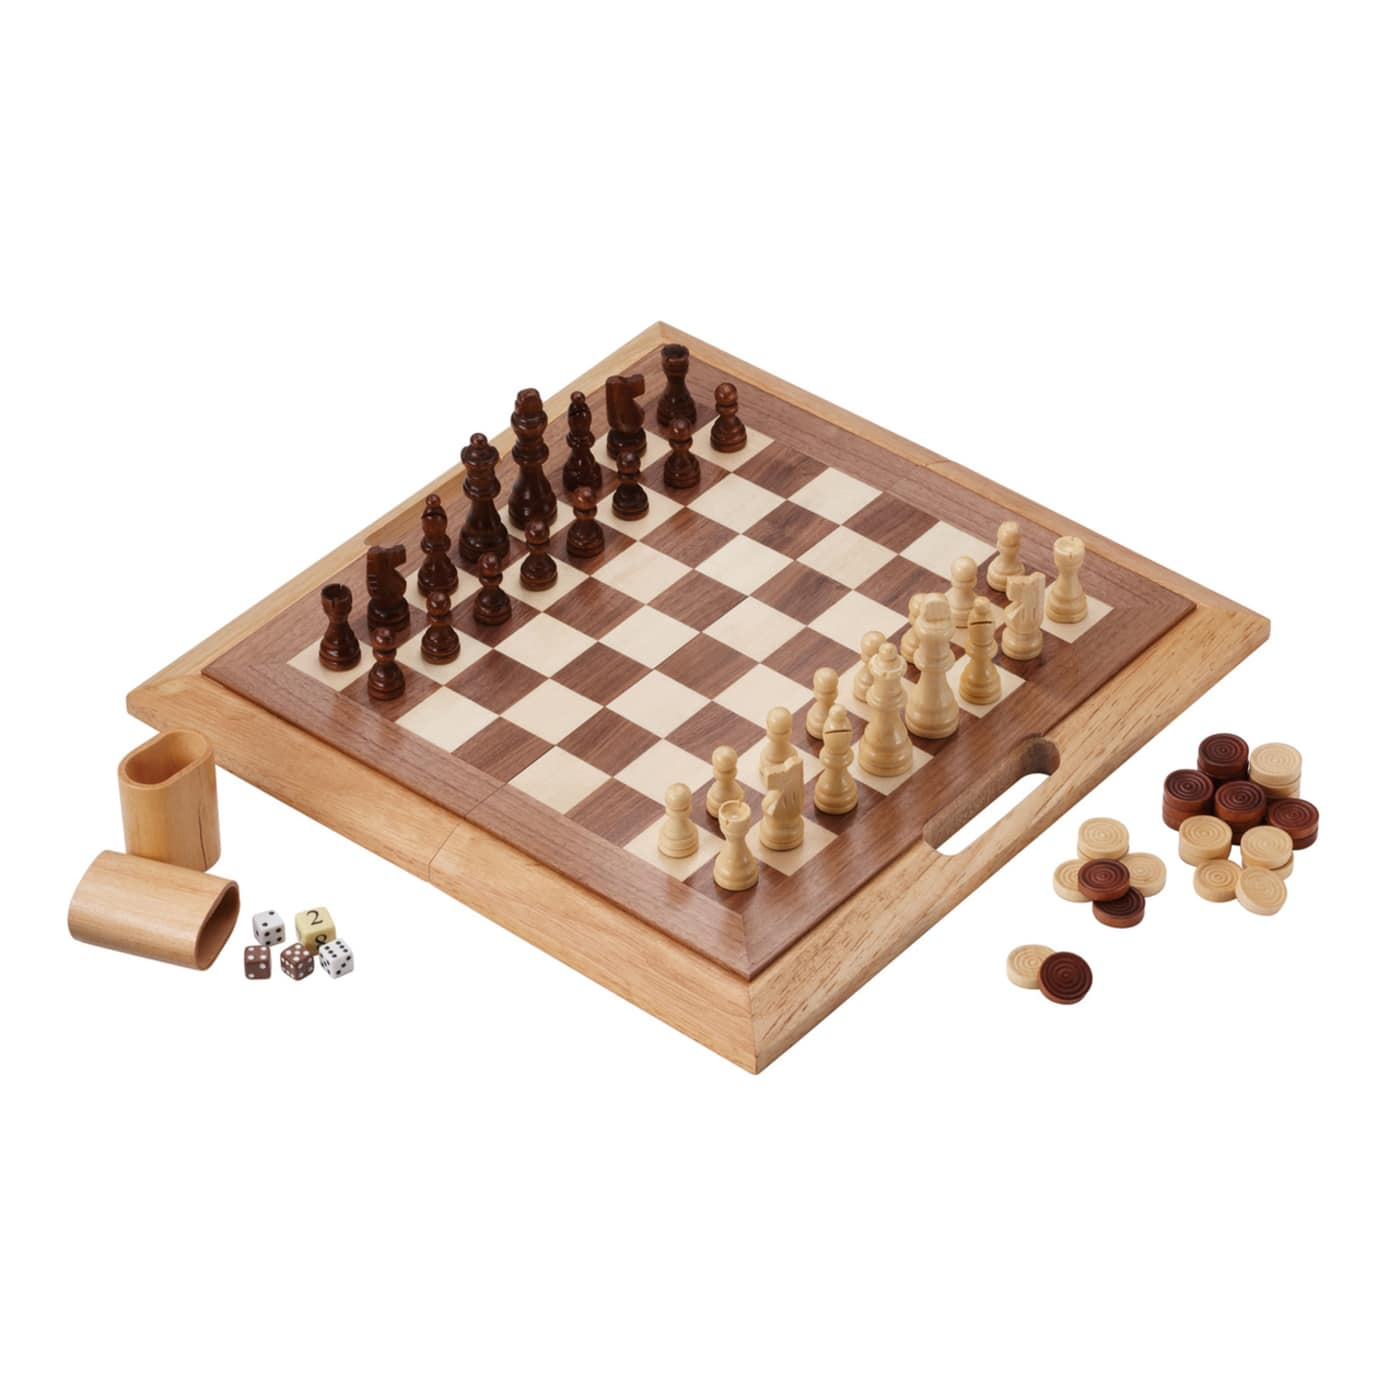 Set Includes Chess Set, Checkers Pieces, 2 Pair Of Dice,